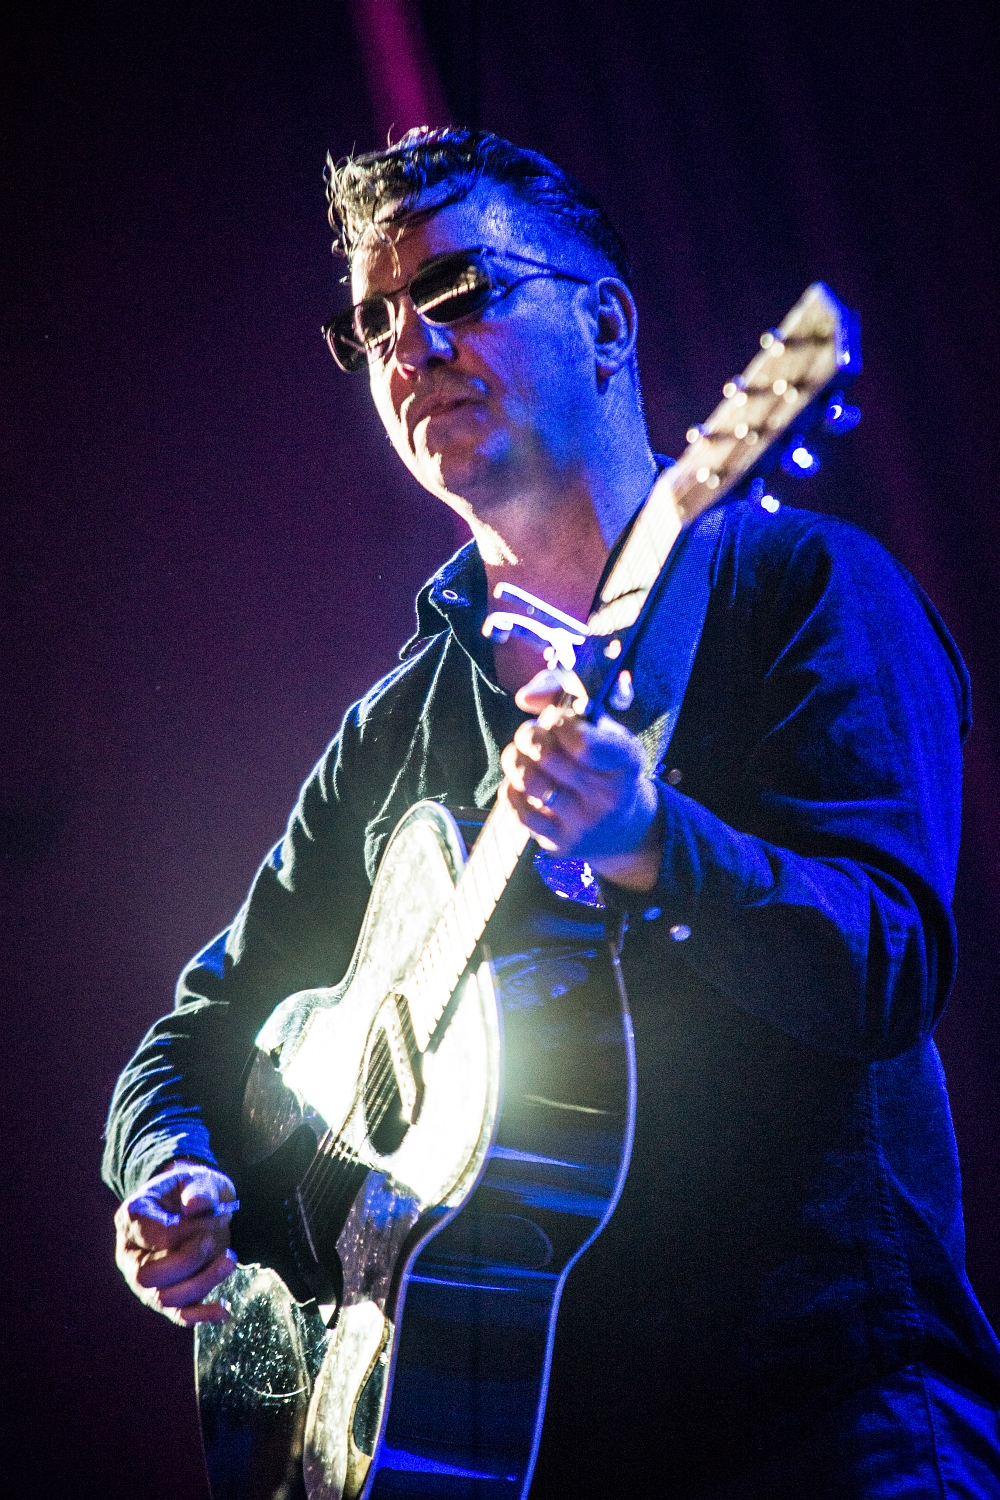 Richard Hawley @ Rock Werchter 2013 (Jan Van den Bulck)